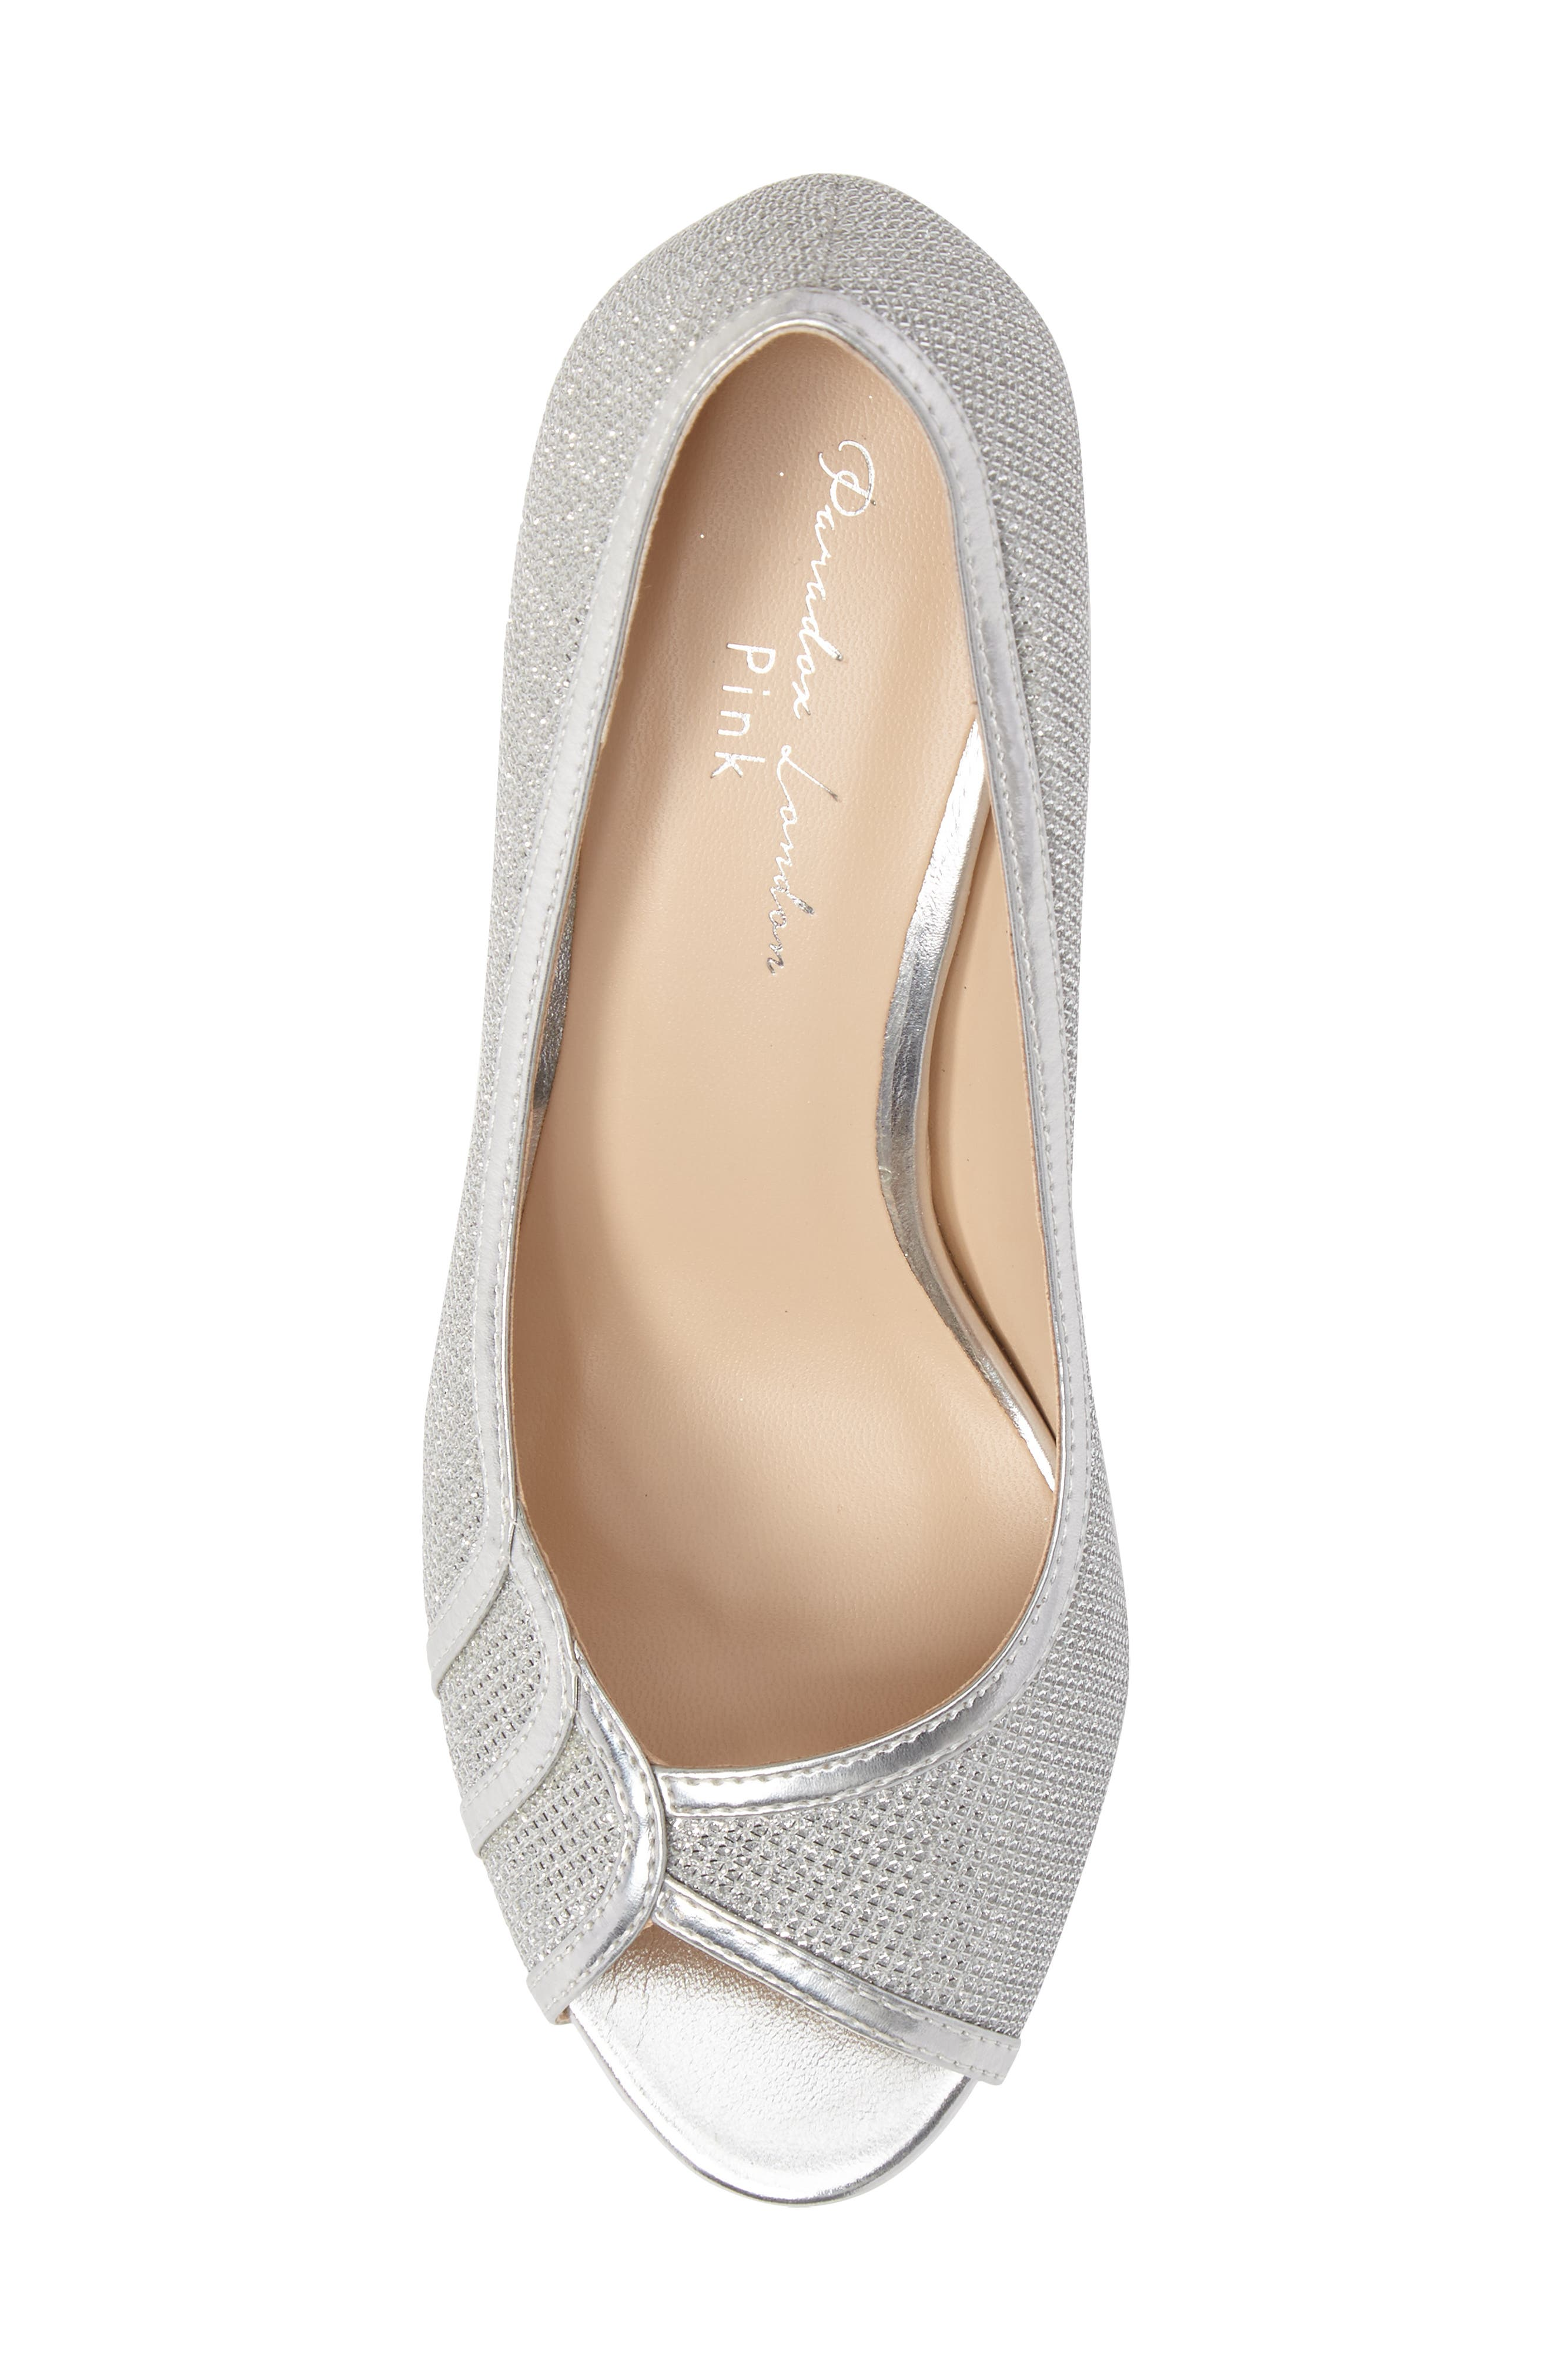 Chester Peep Toe Pump,                             Alternate thumbnail 5, color,                             SILVER